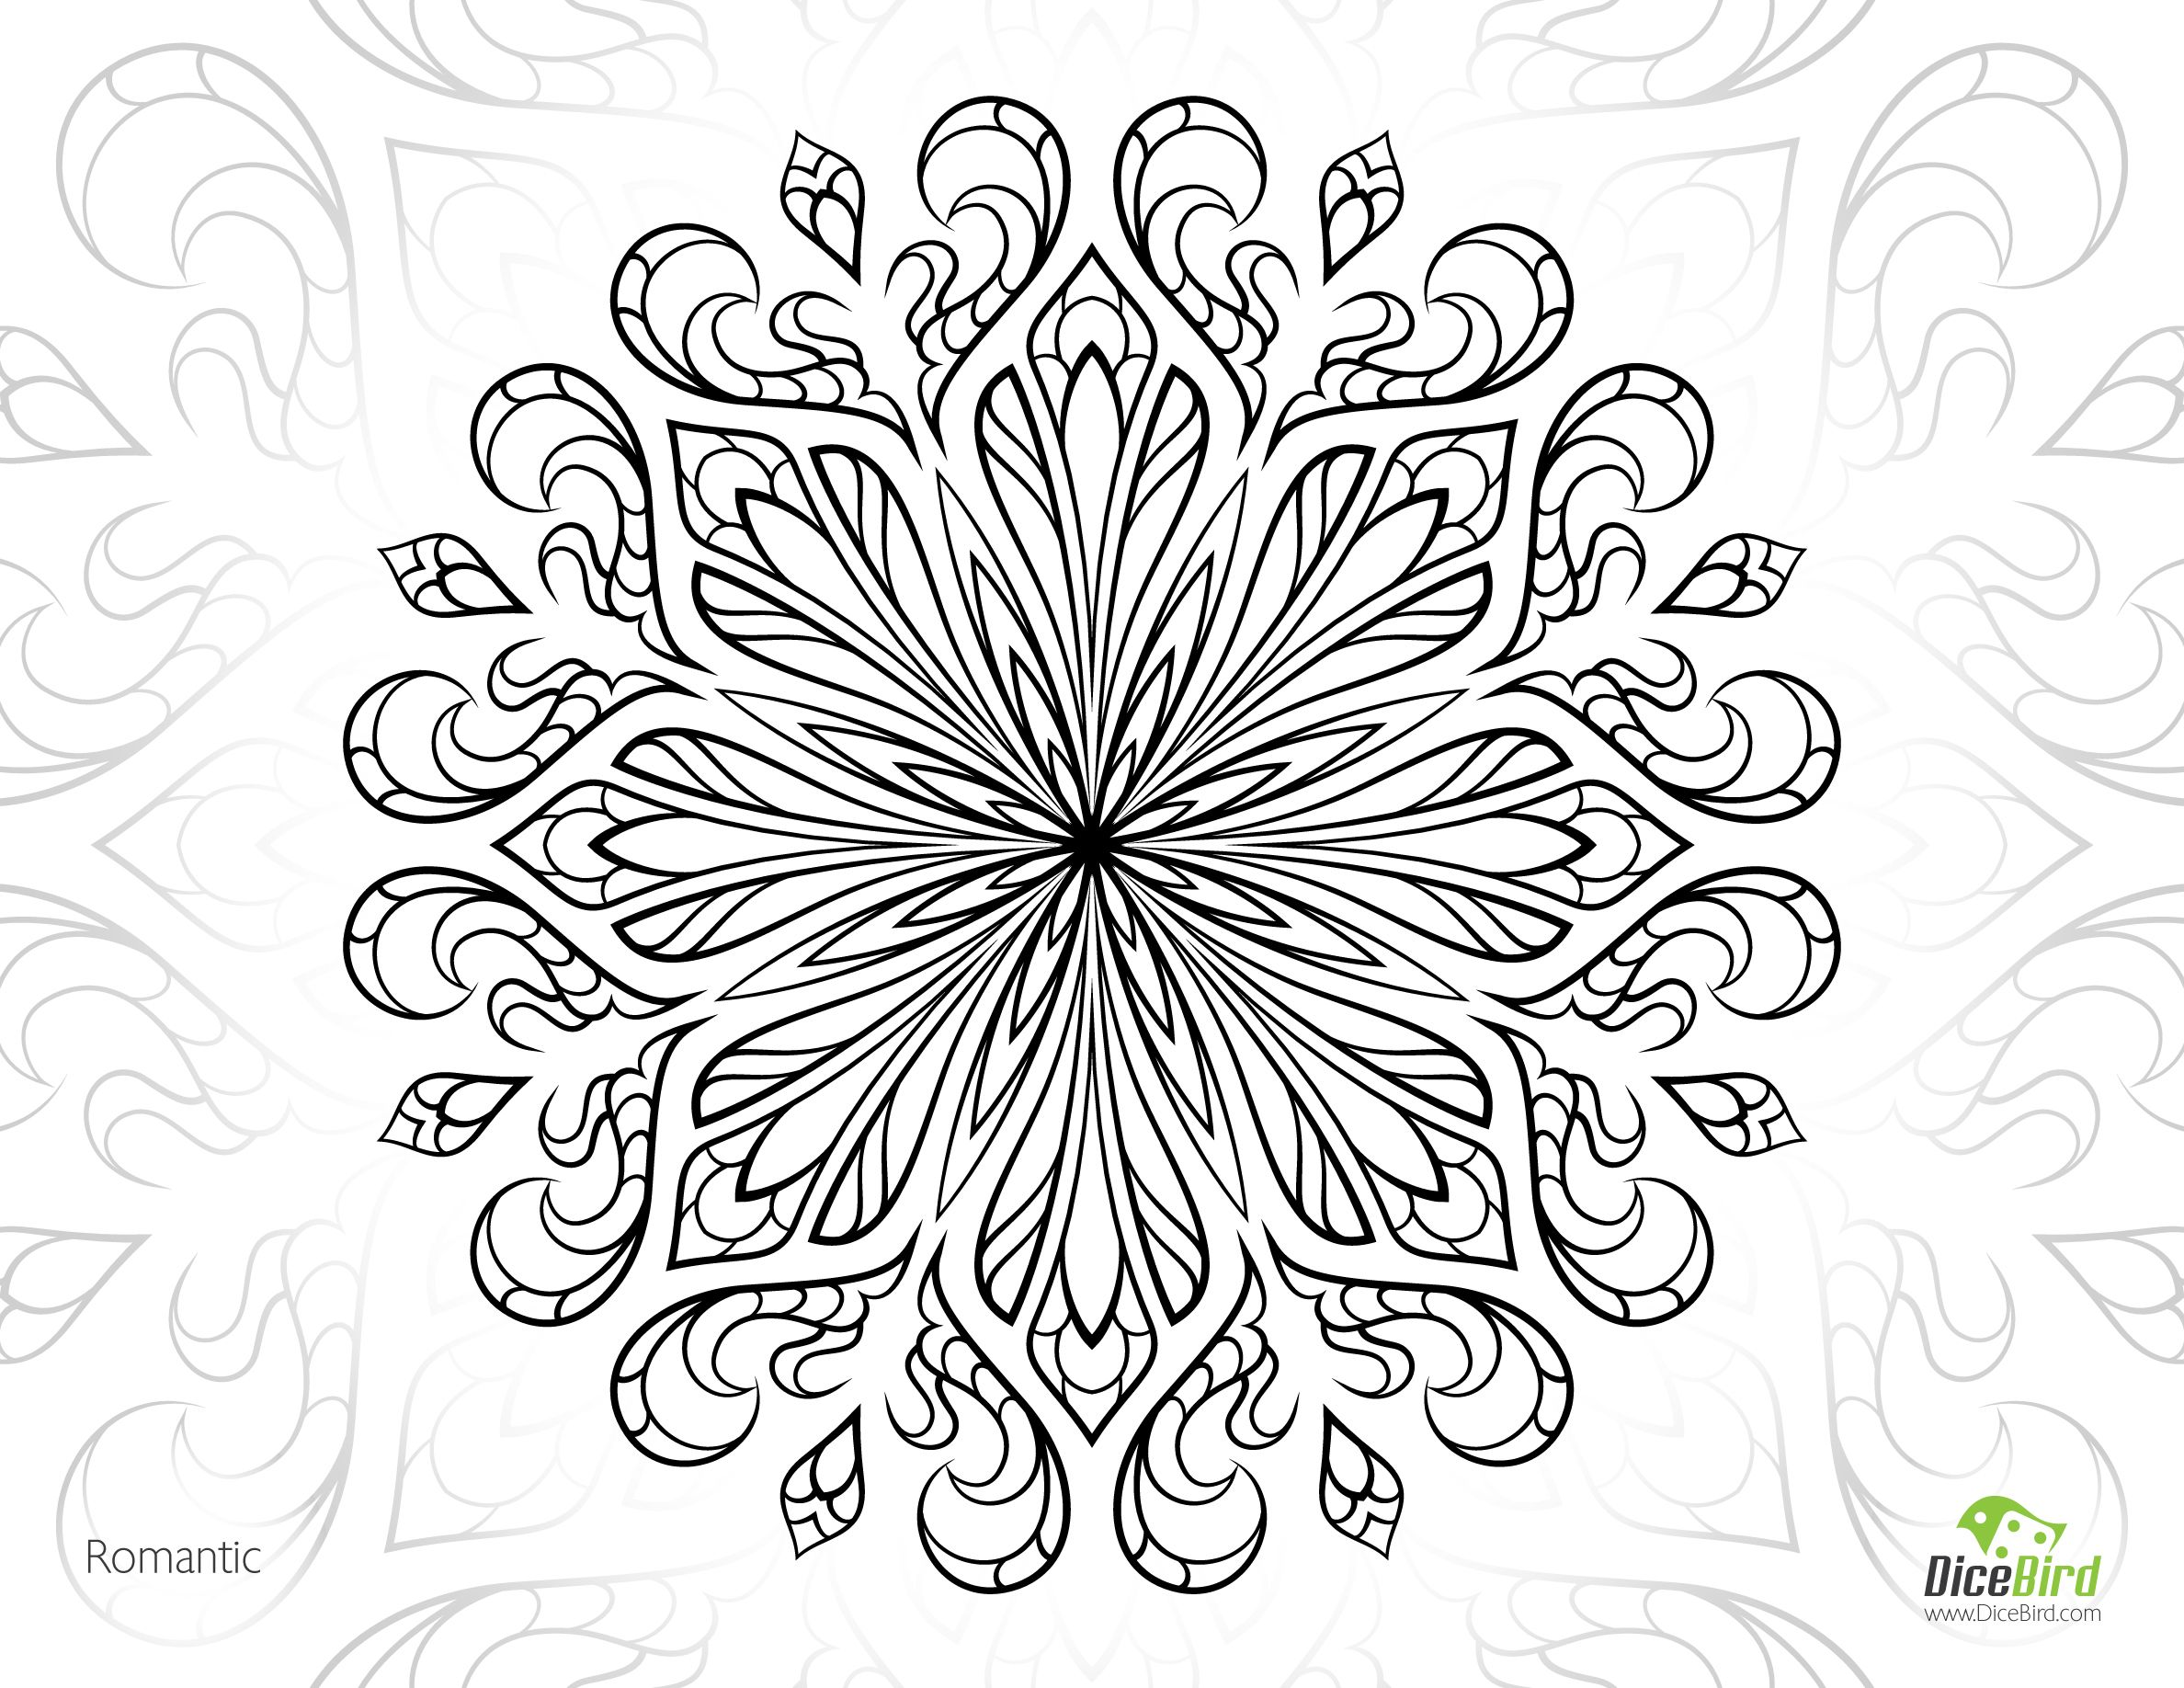 Free Printable Coloring Pages For Adults Advanced Romantic Flower